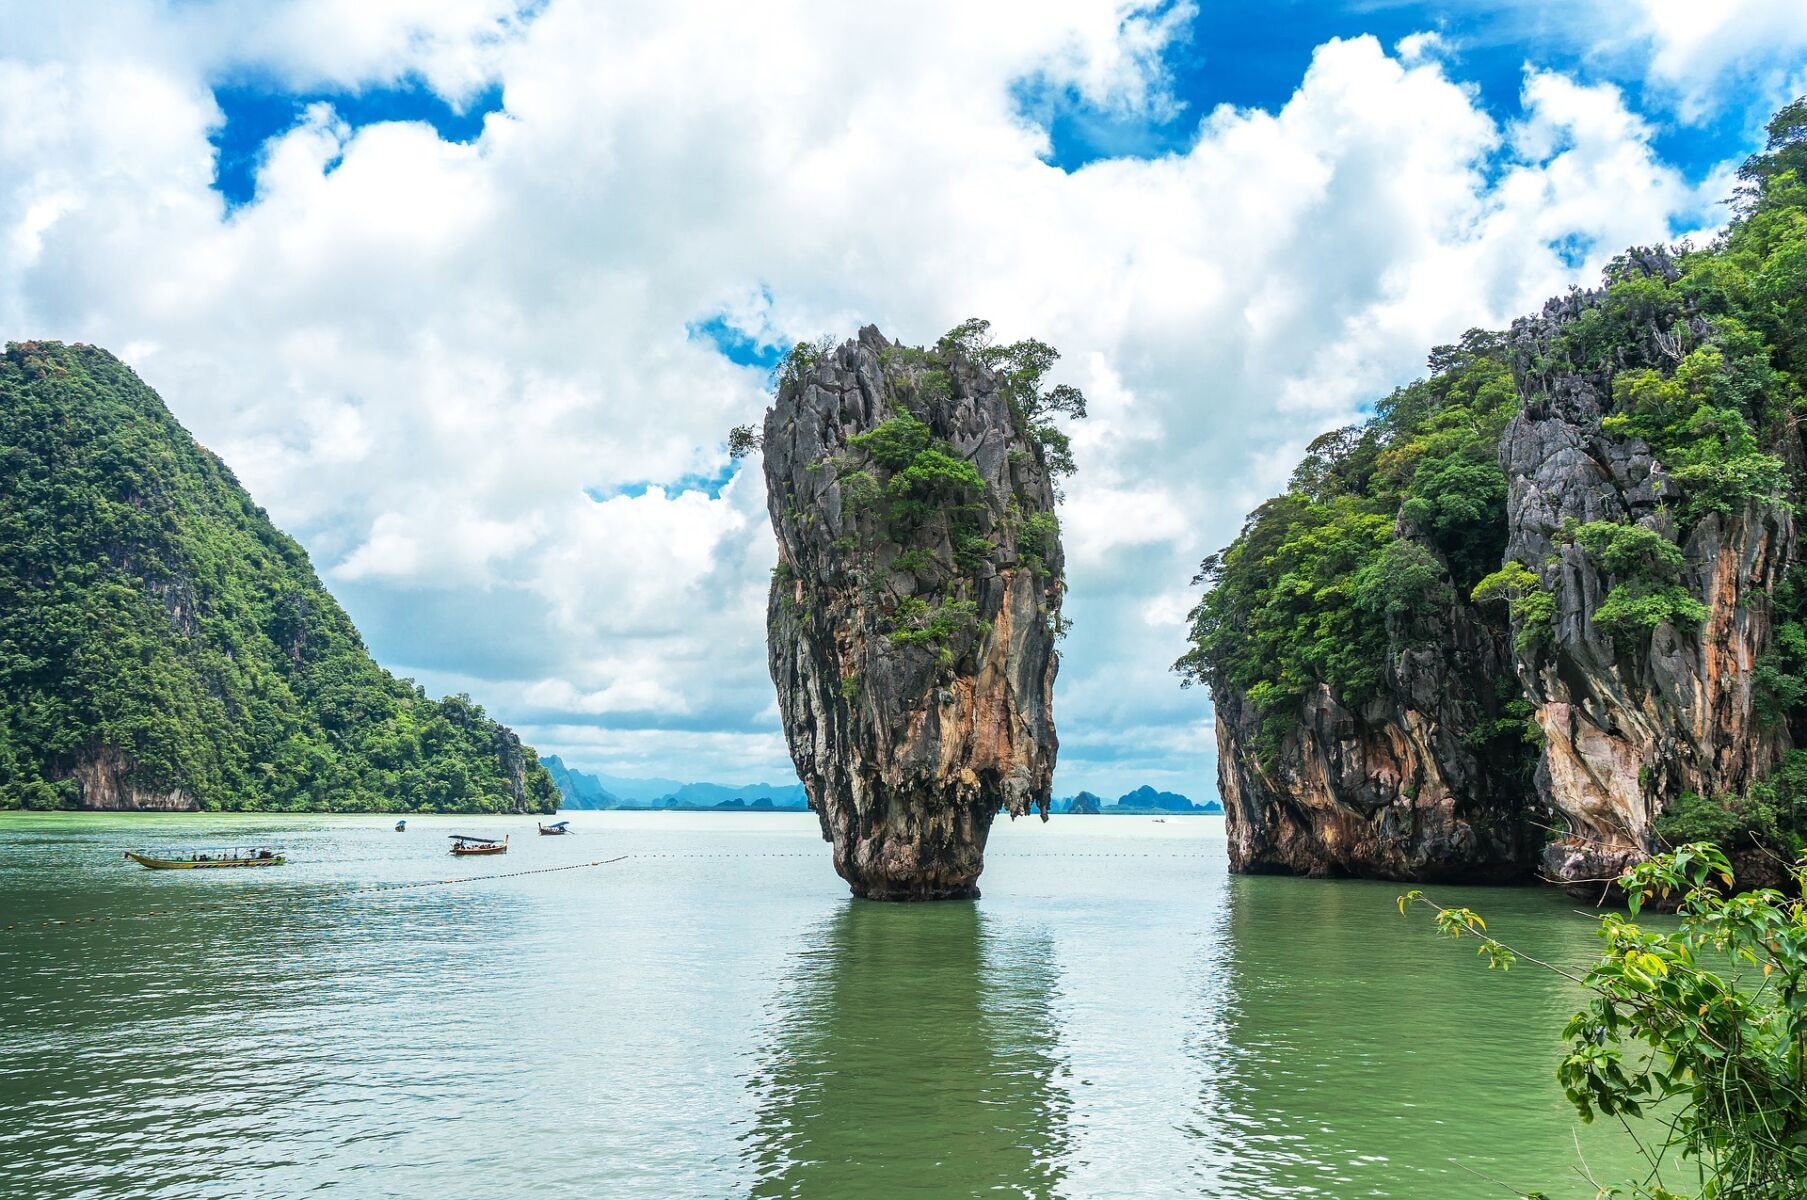 James Bond Island. Image by Max Liew from Pixabay